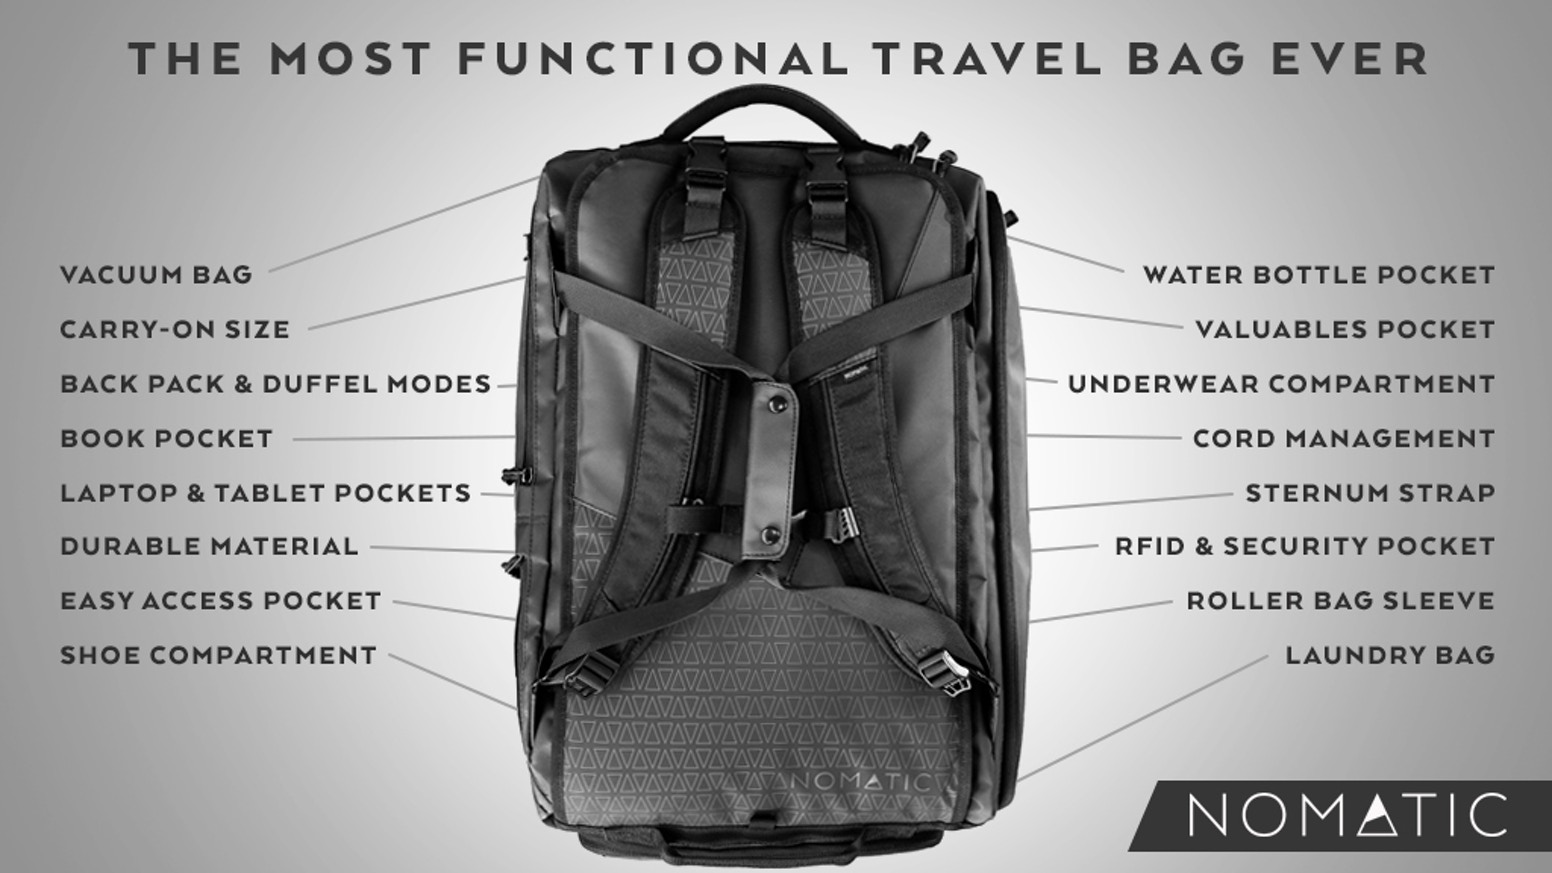 d24a4100ef07 The NOMATIC Travel Bag  The Most Functional Travel Bag Ever!